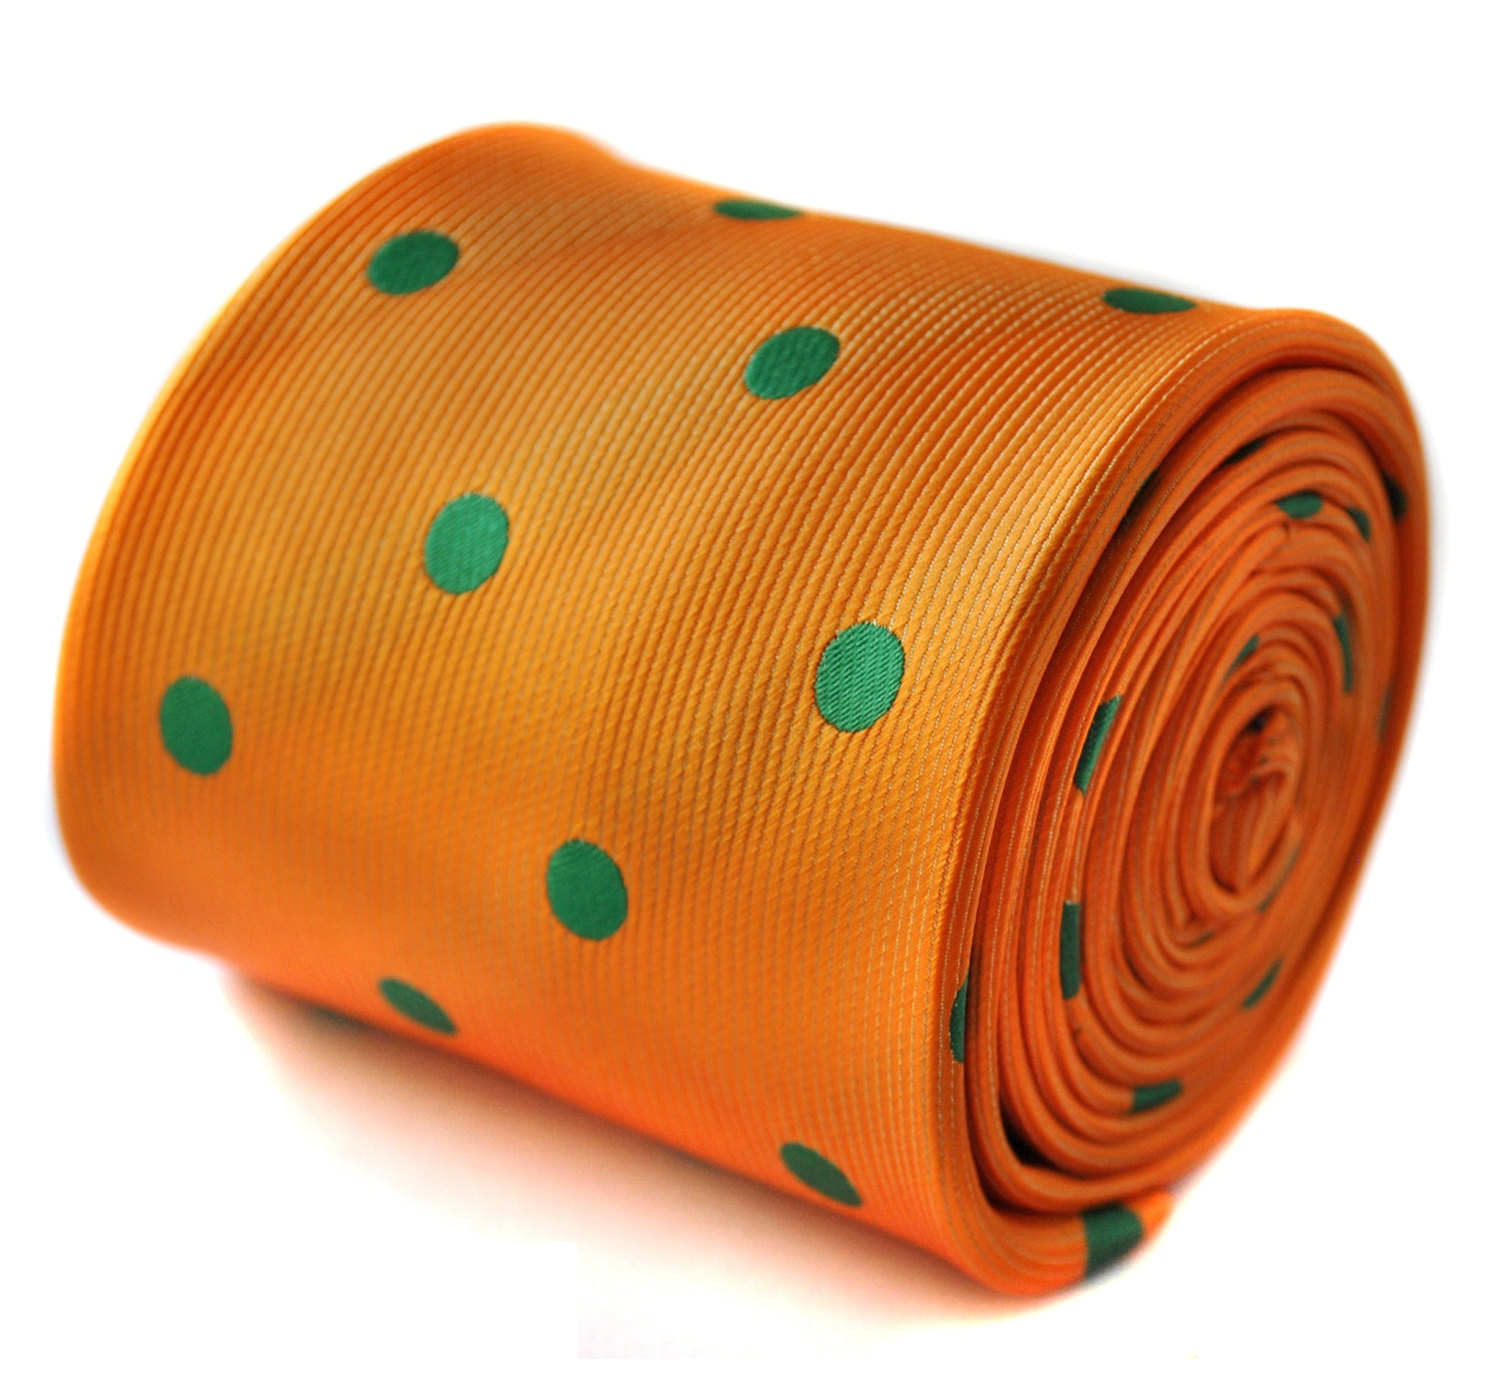 orange and green polka spot tie with signature floral design to the rear by Fred